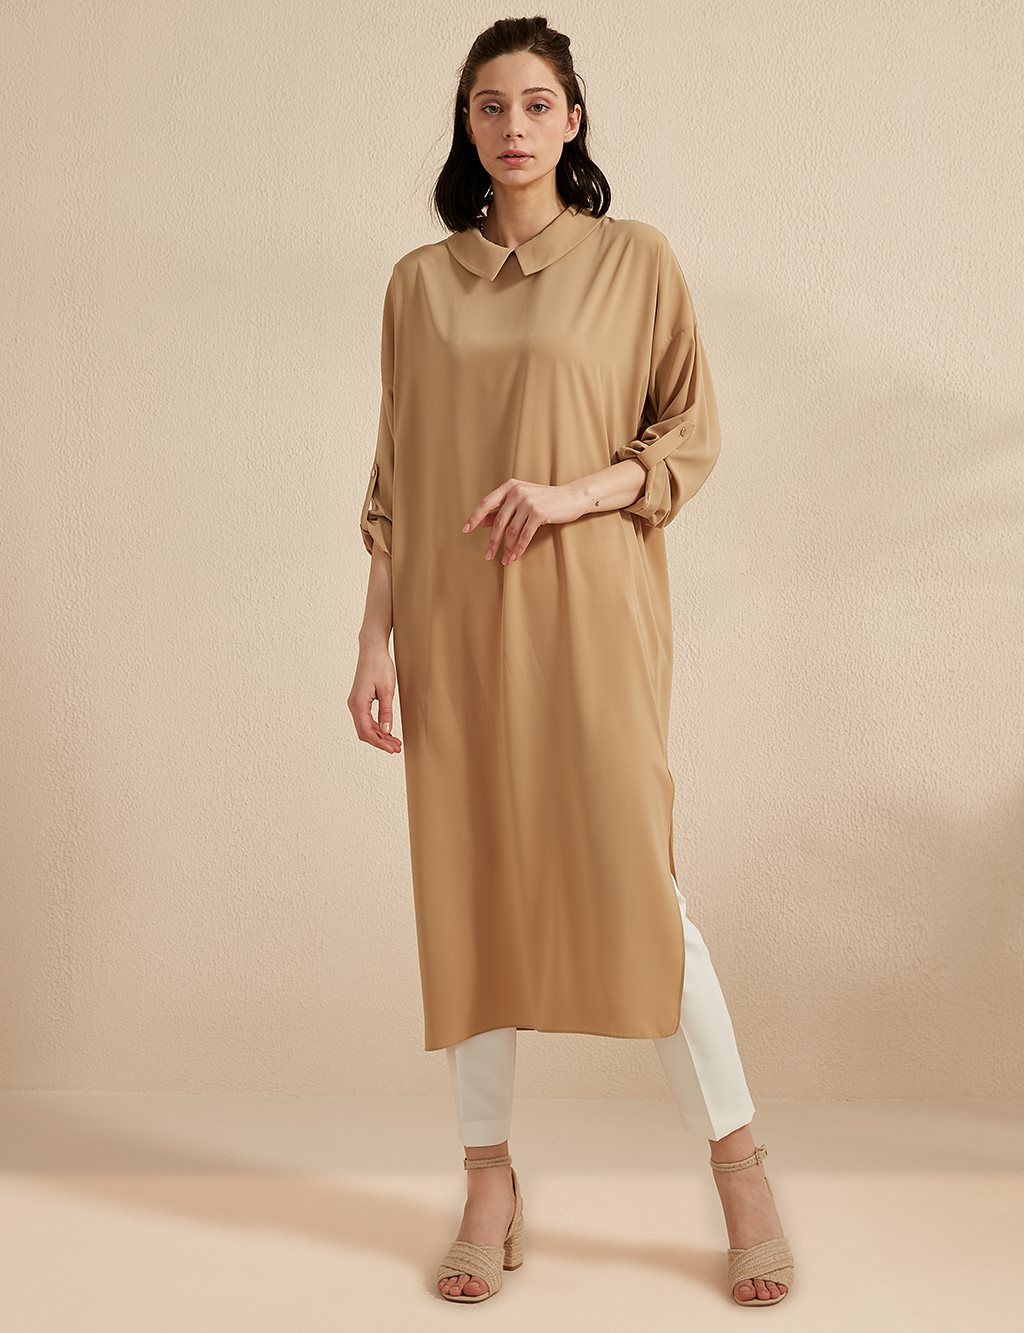 Basic Tunic Dress Beige SZ 21503